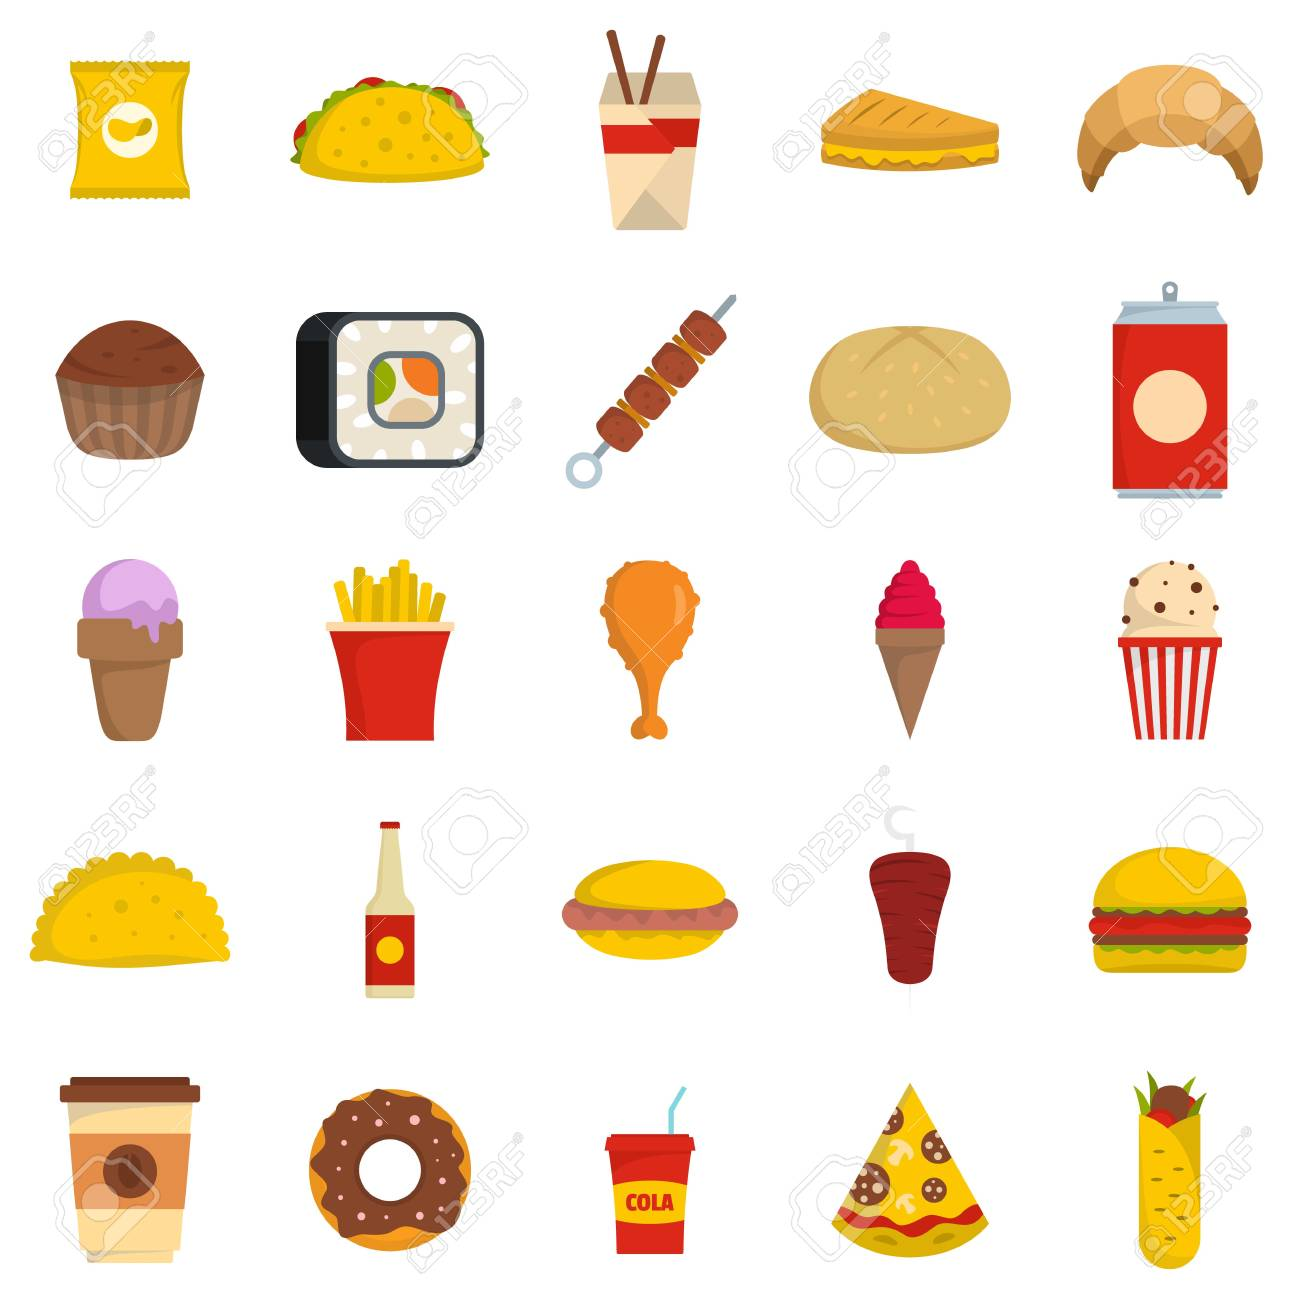 Fast Food Icons Set Flat Illustration Of 25 Fast Food Icons